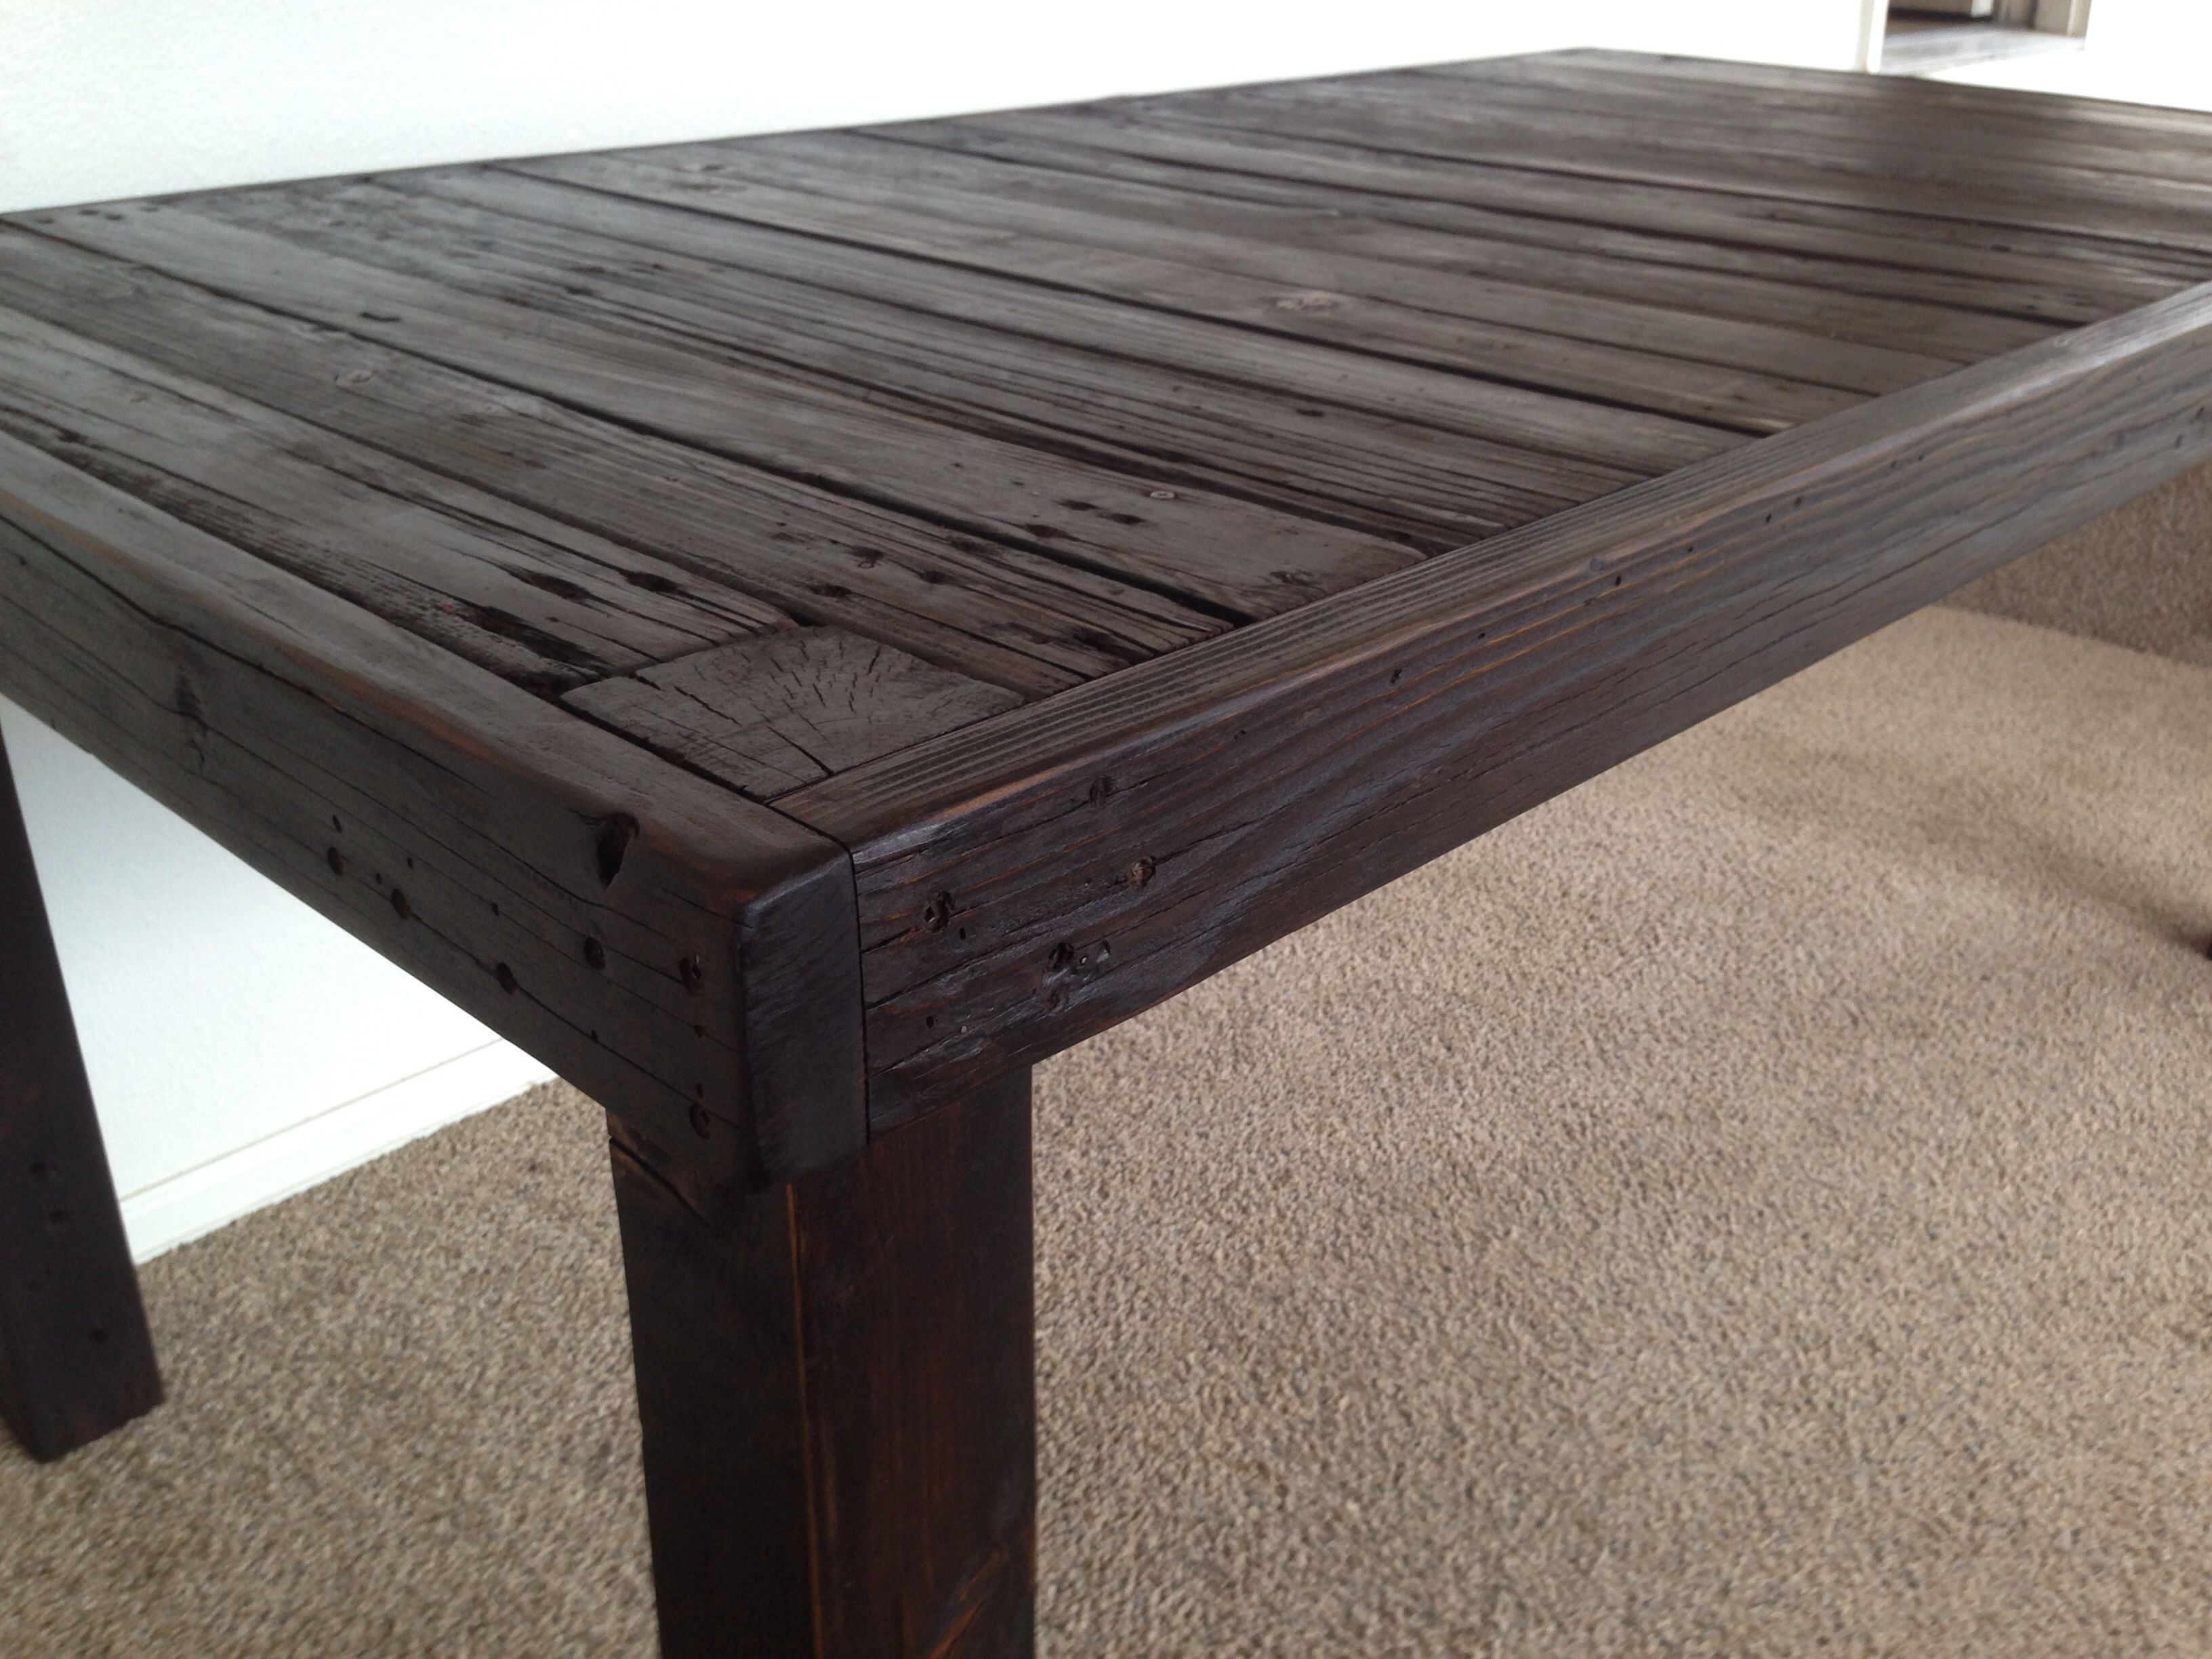 This reclaimed wood table was fun to build - dark walnut stain ...